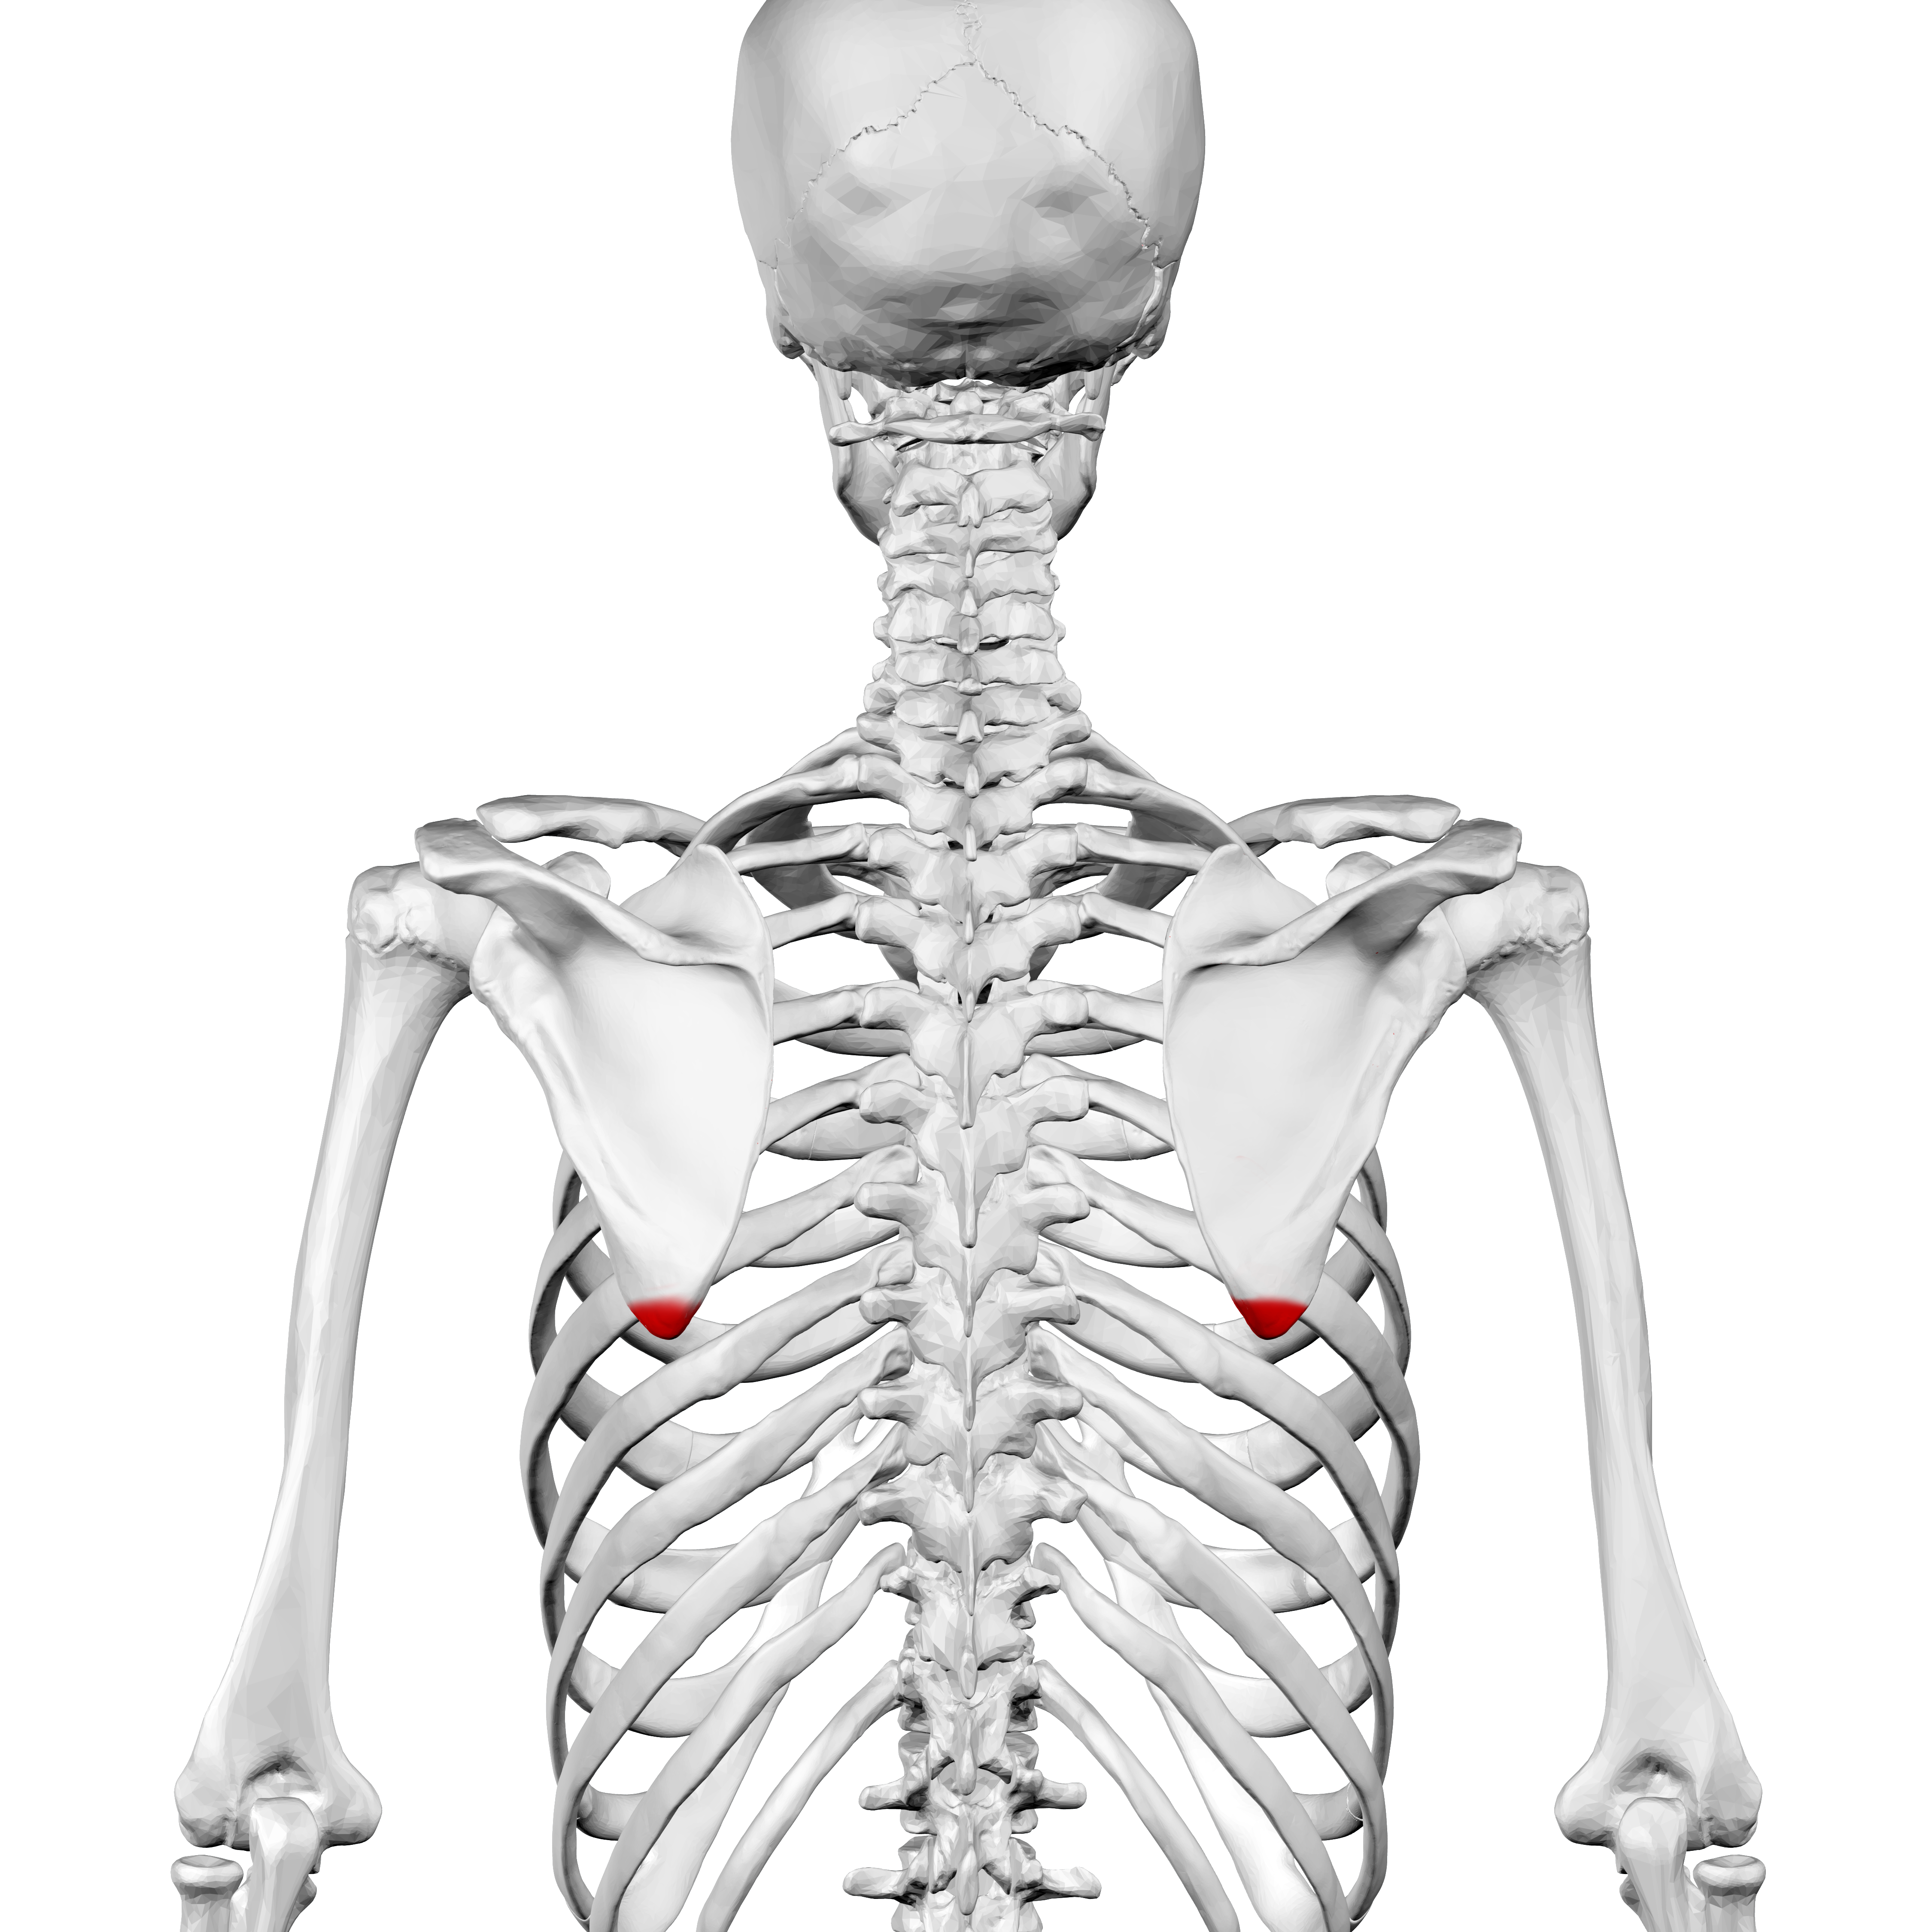 File:Inferior angle of the scapula01.png - Wikimedia Commons